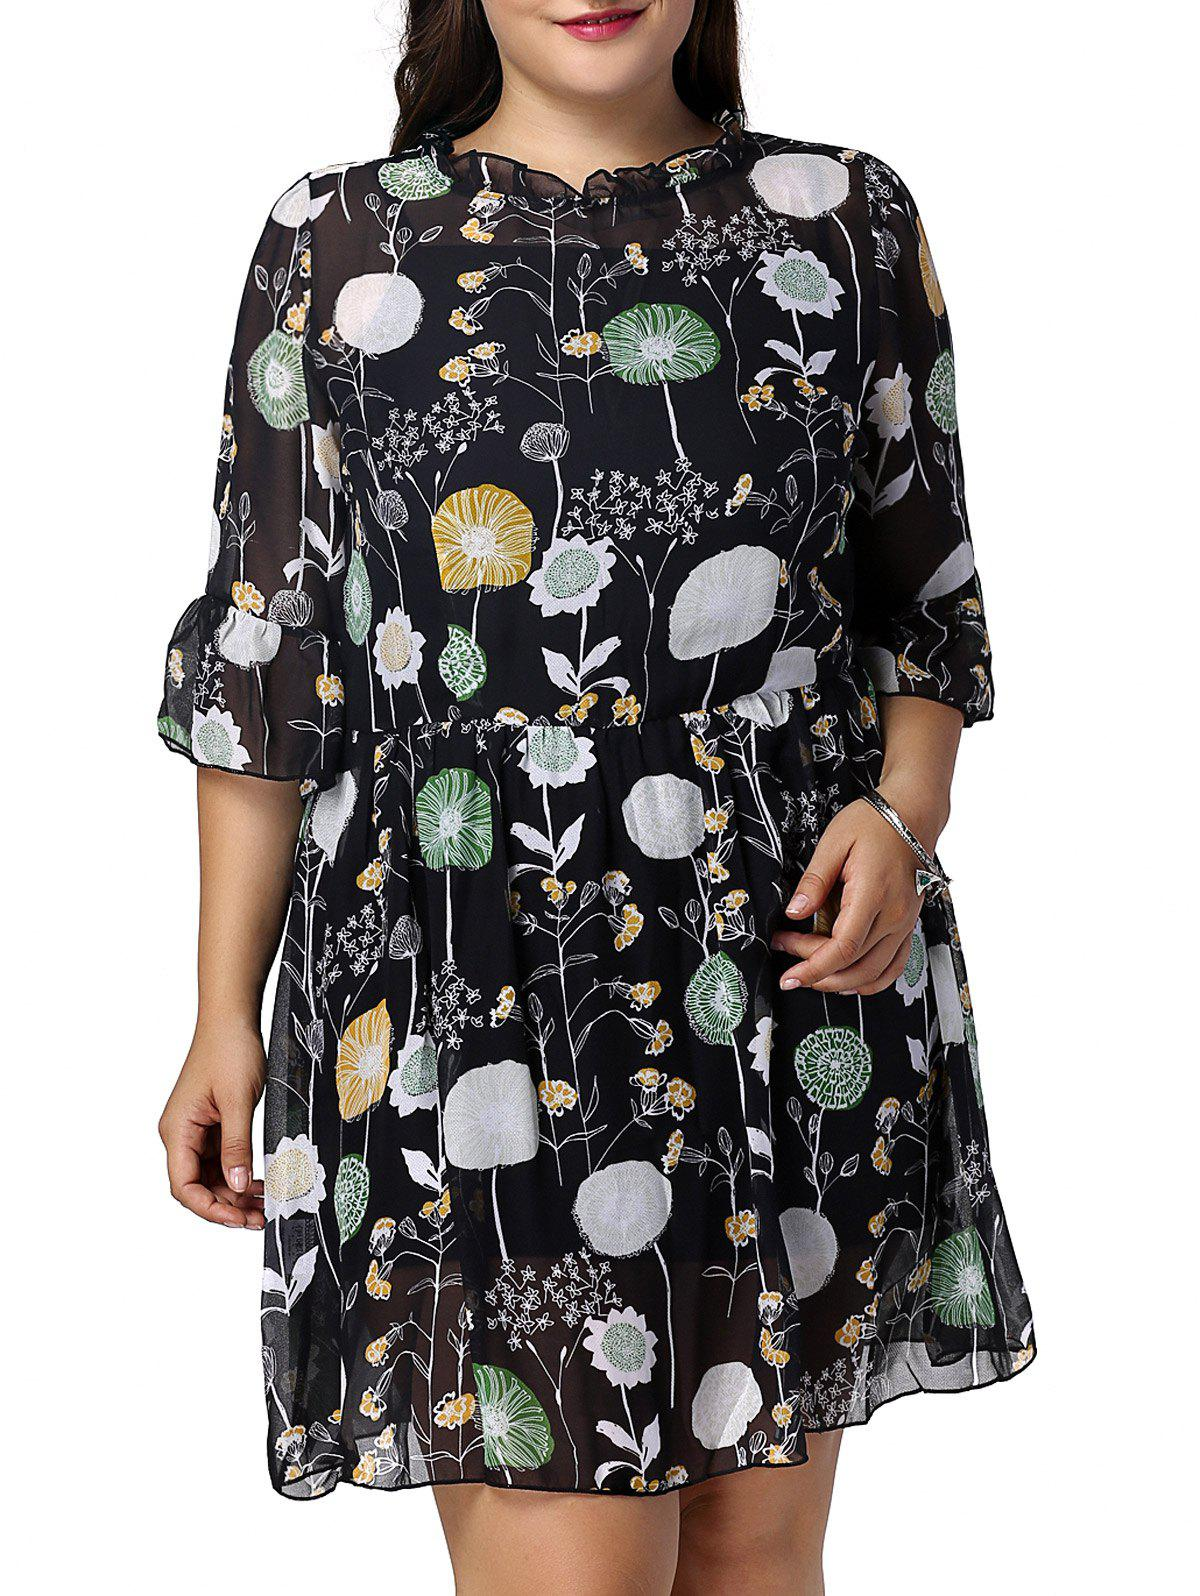 Sweet Plus Size Floral Print Flare Sleeve Women's Dress - BLACK 2XL